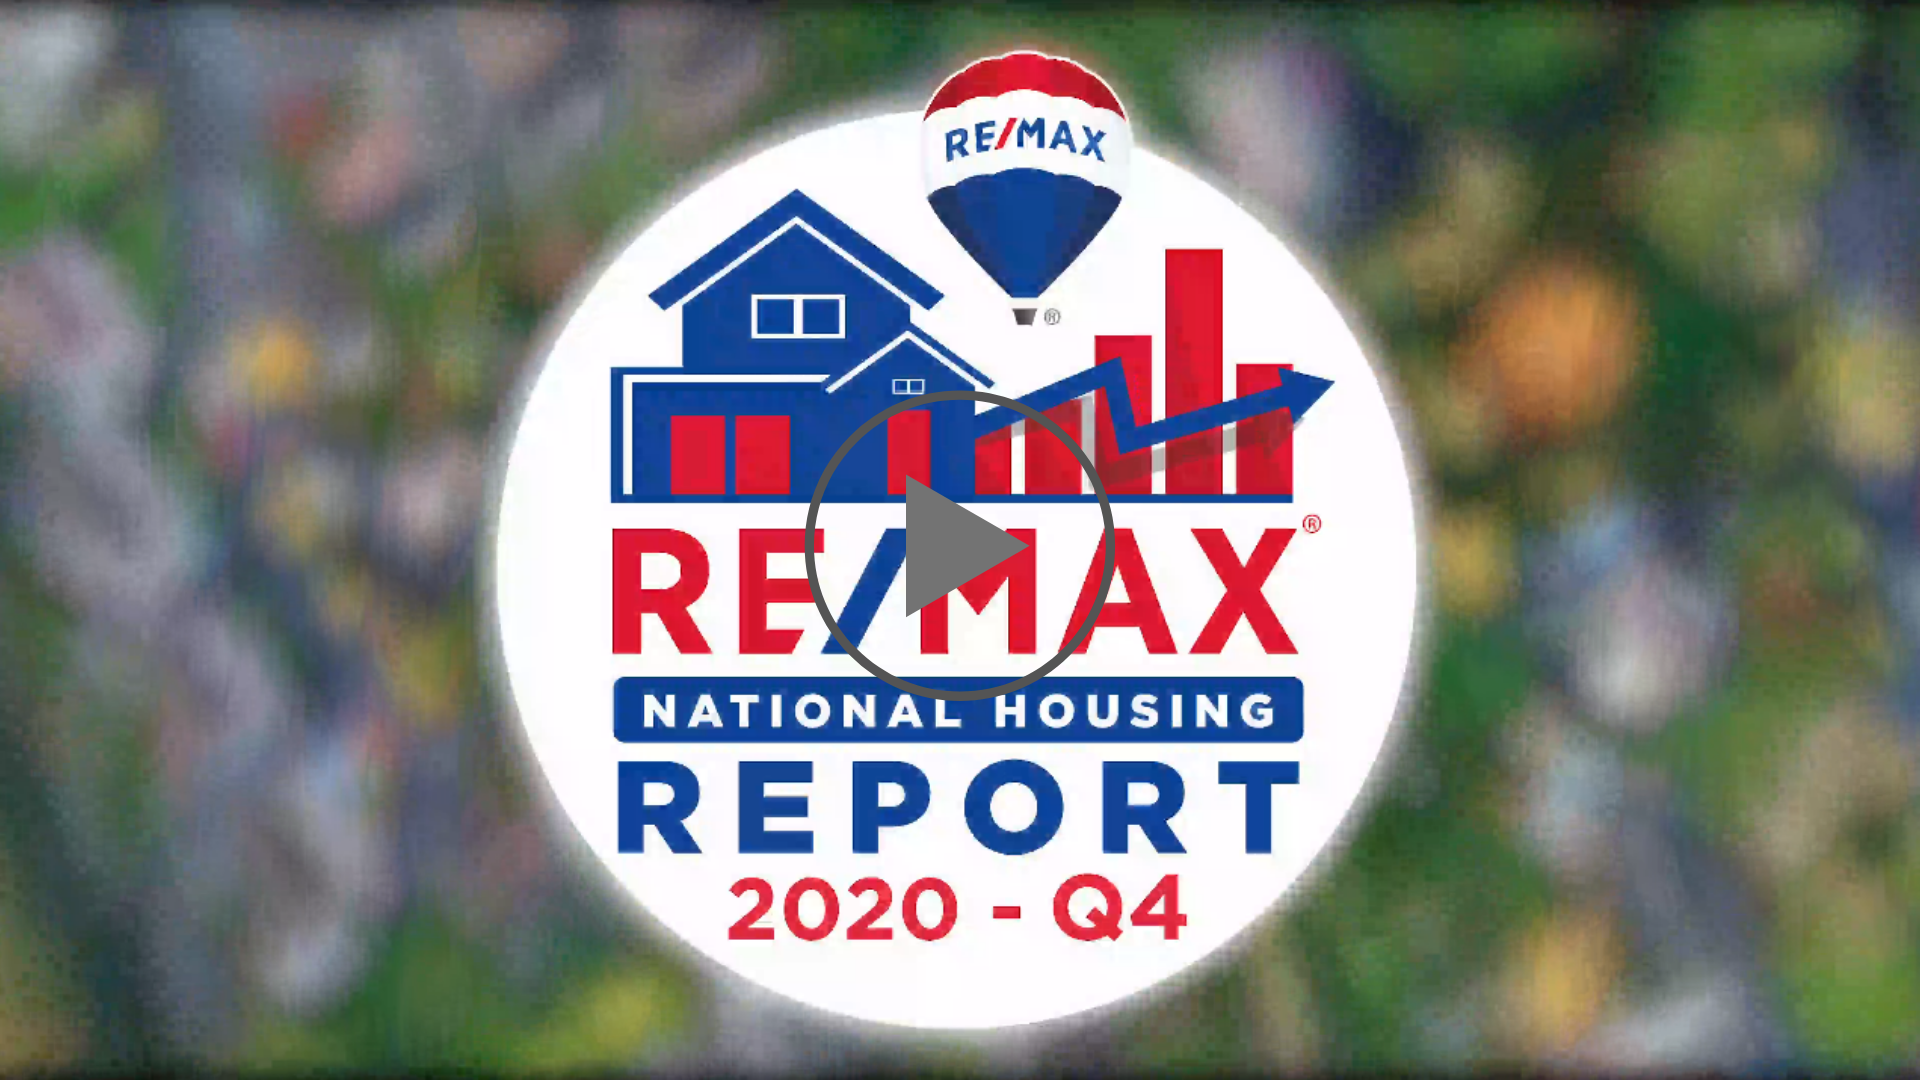 RE/MAX National Housing Report Q4 2020